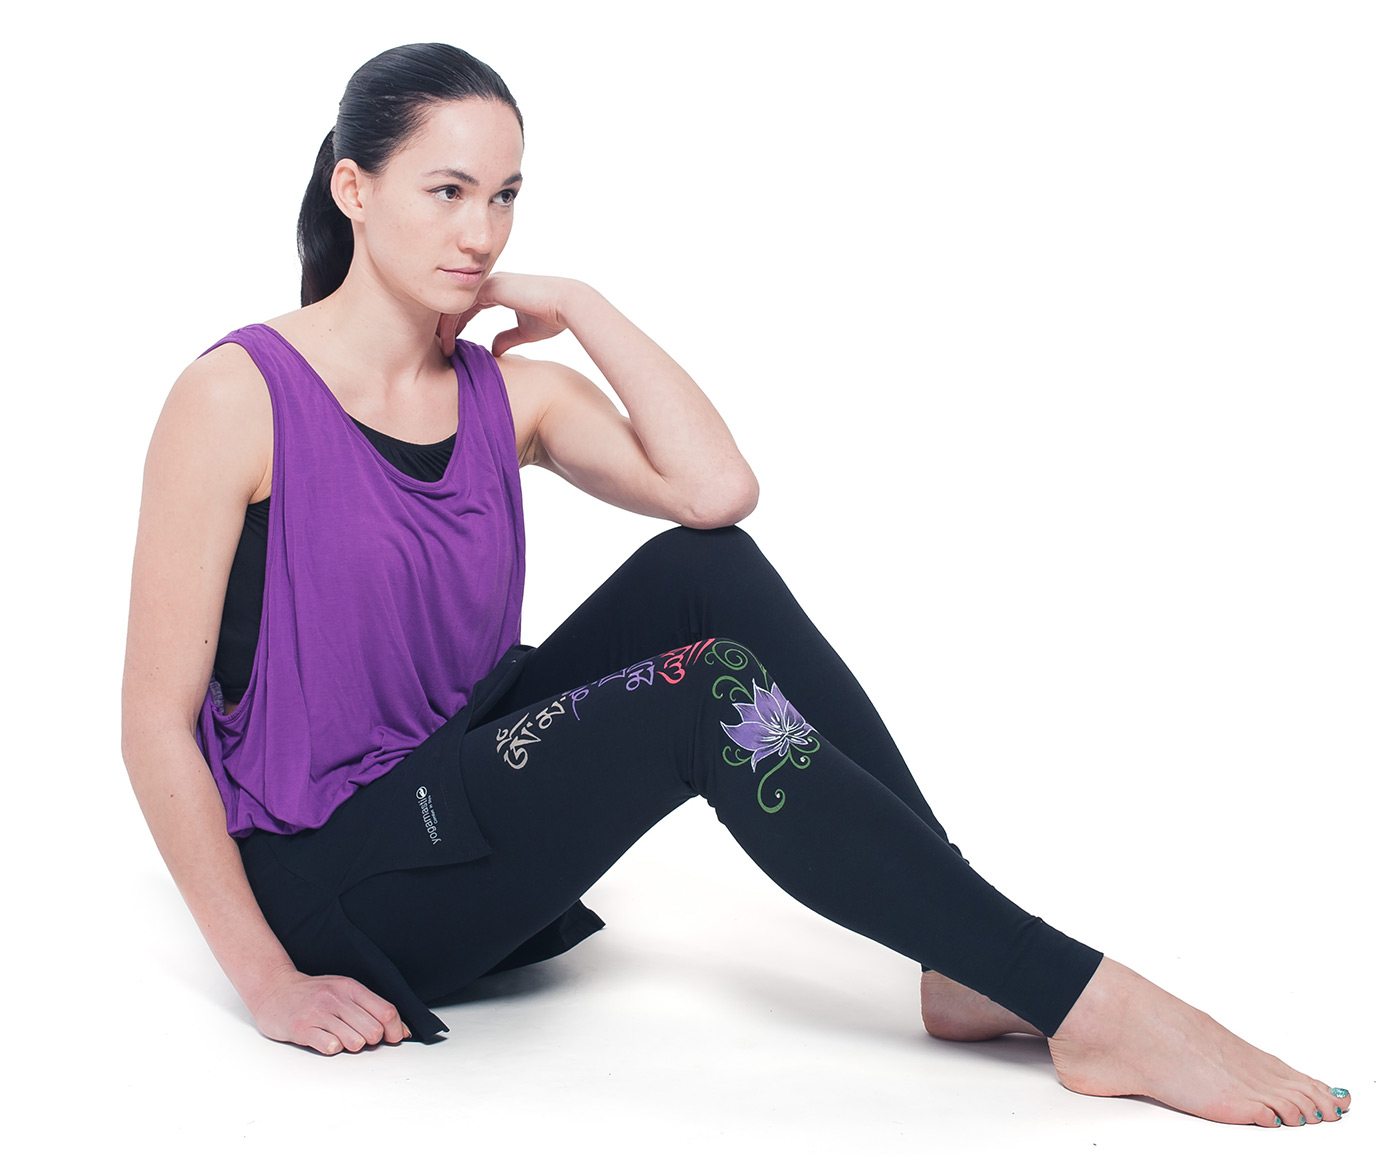 Womens wonder support Tank, one size - purple